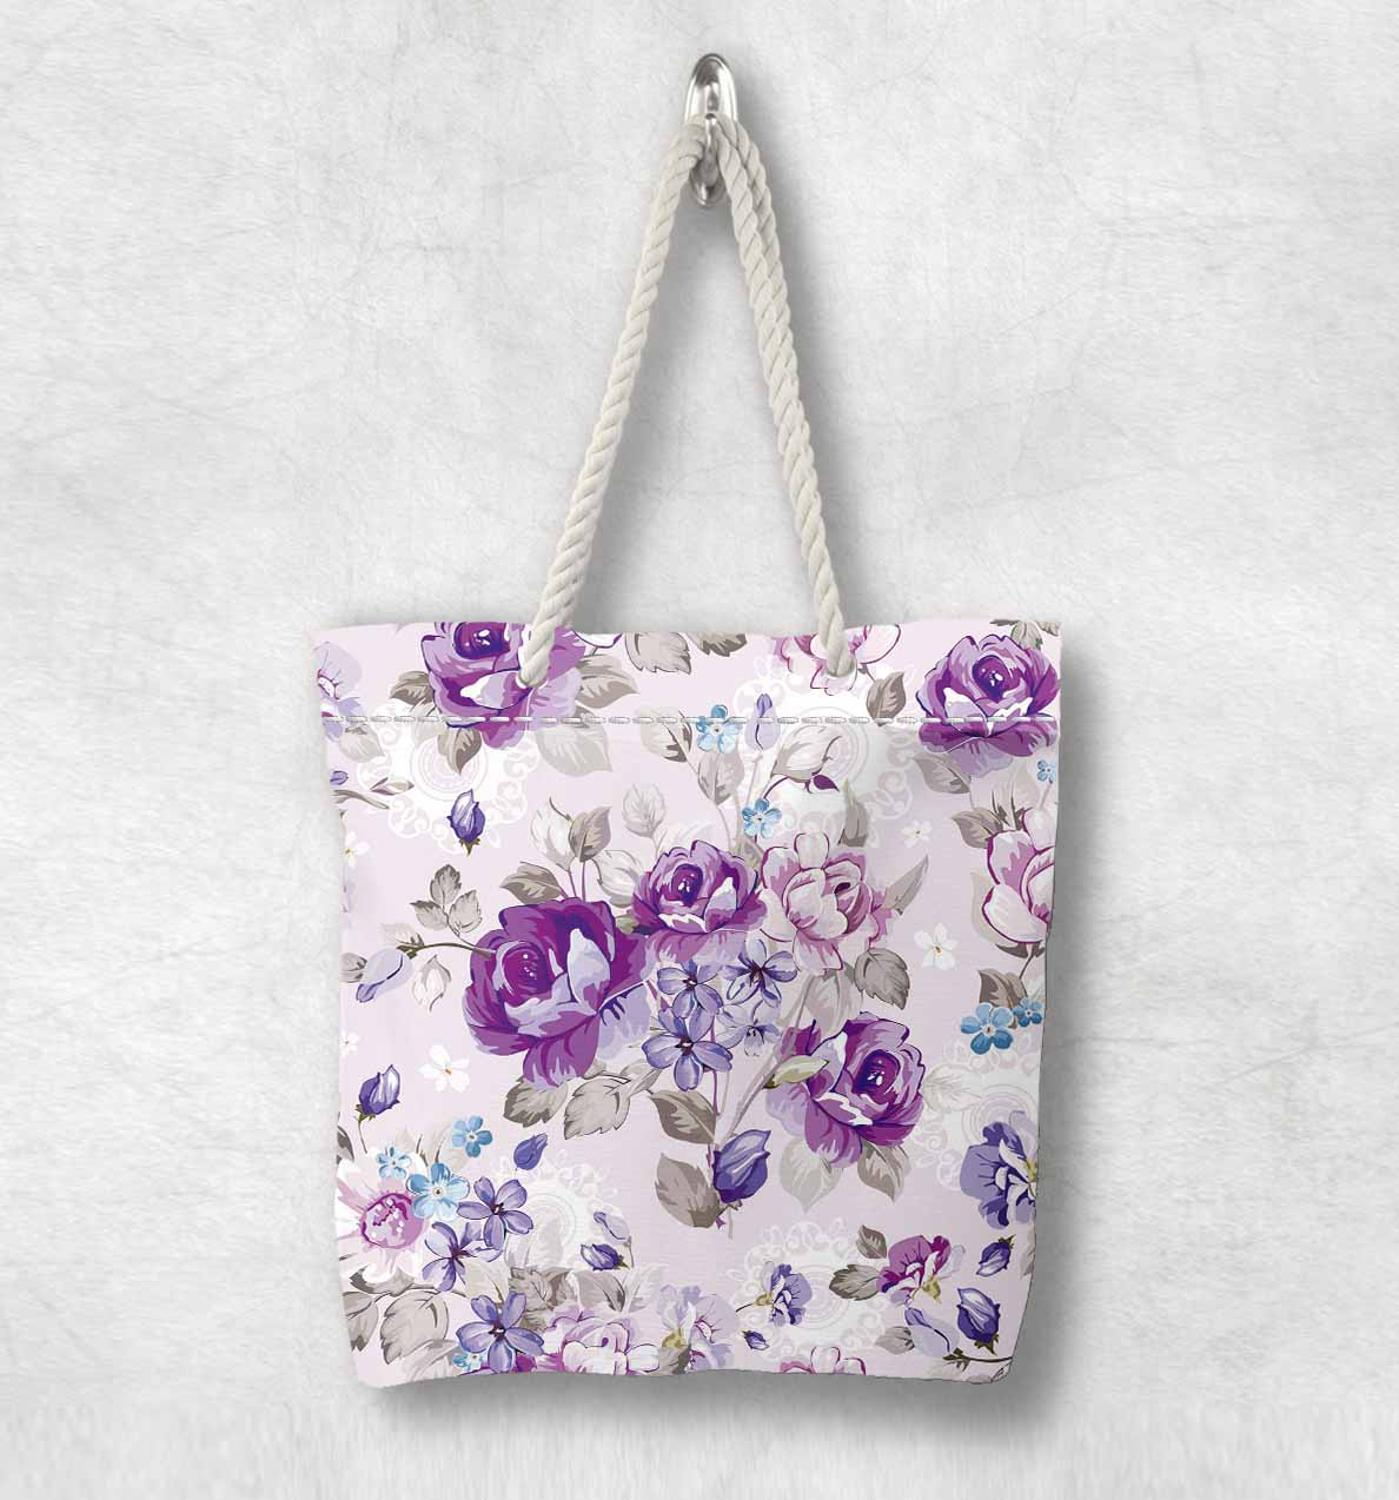 Else Vintage Roses Purple Flowers Floral New Fashion White Rope Handle Canvas Bag Cotton Canvas Zippered Tote Bag Shoulder Bag